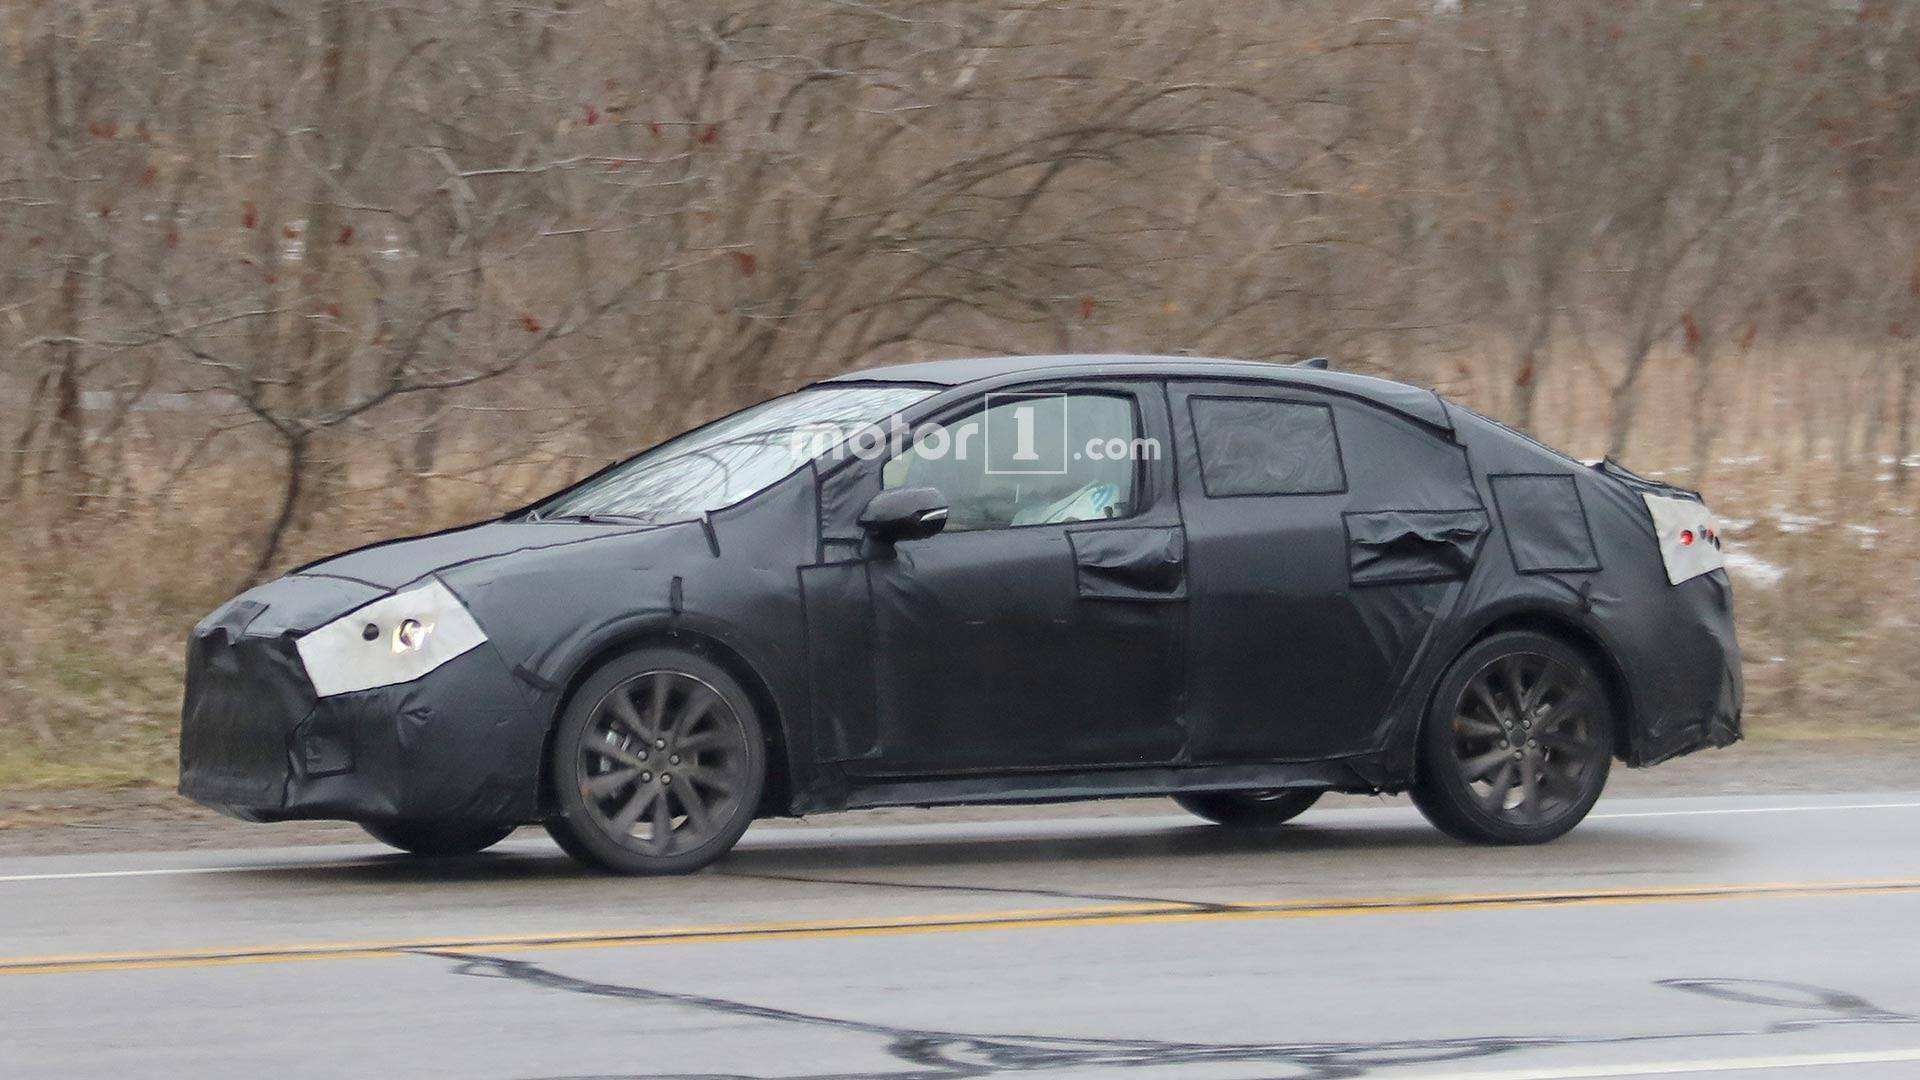 88 A 2020 Spy Shots Toyota Prius Picture